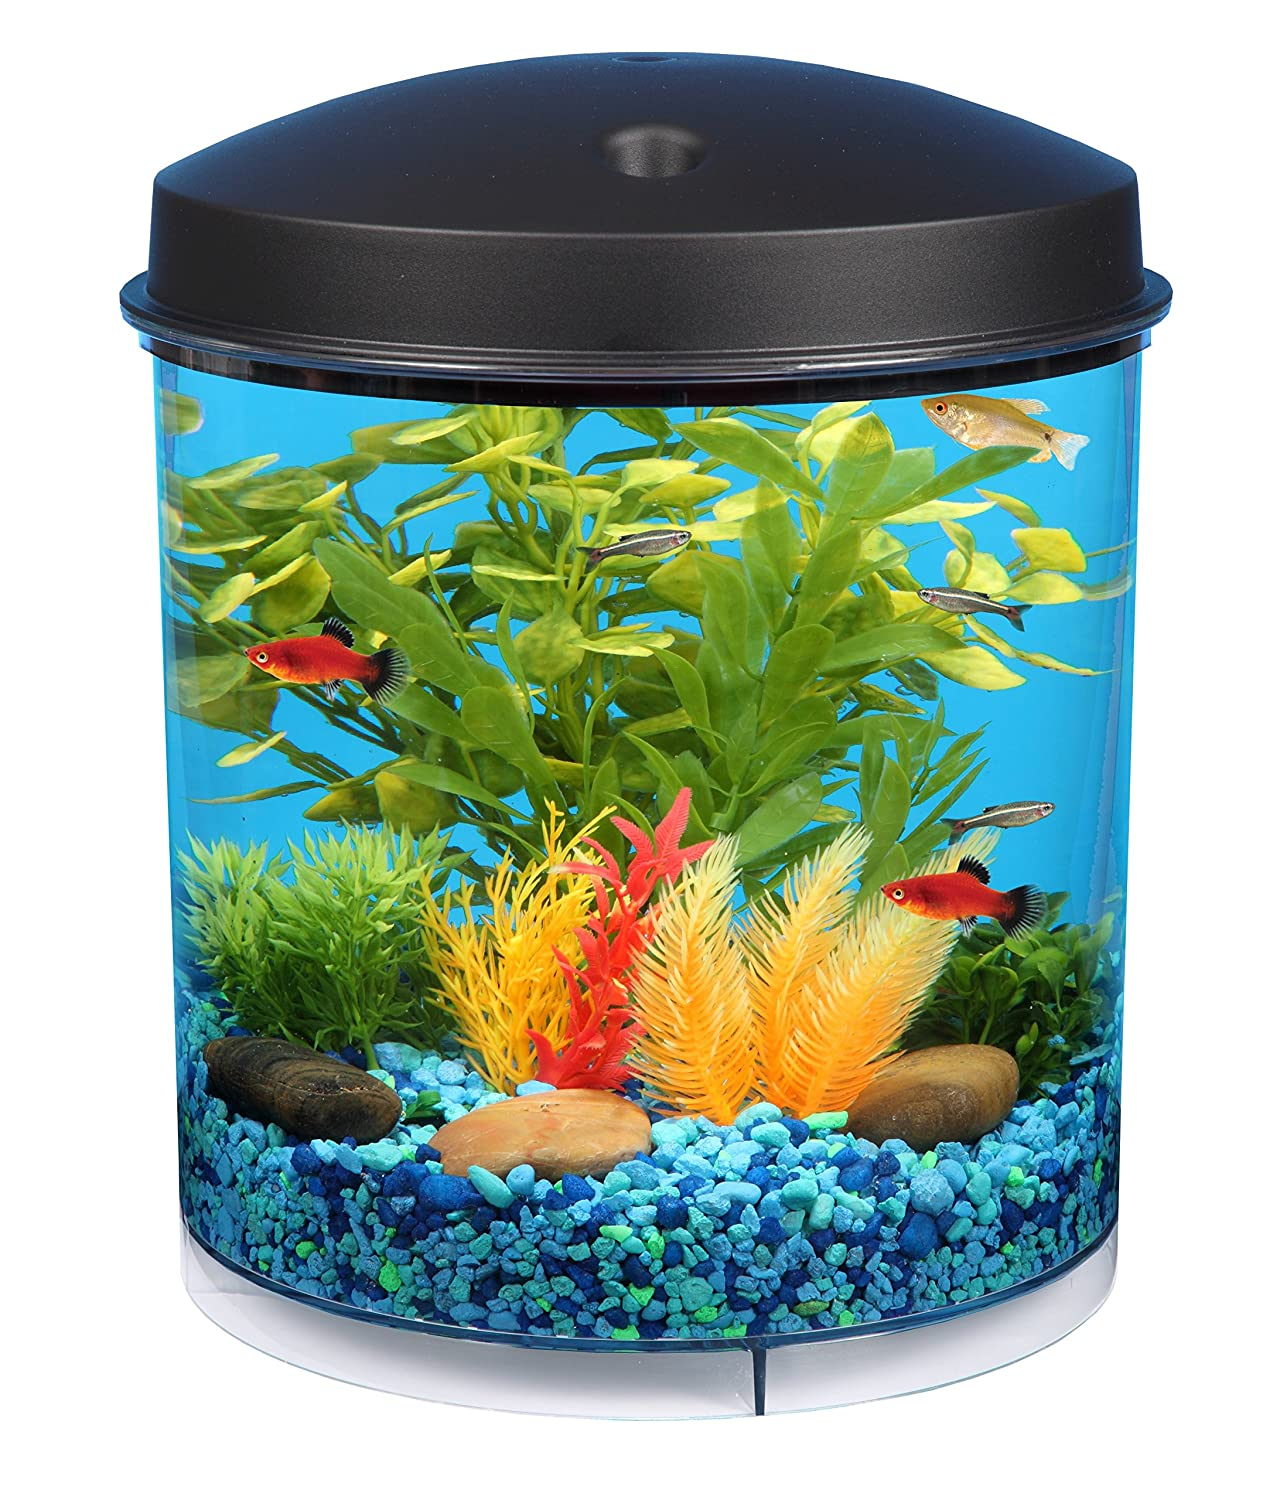 Cool Aquariums For Sale Amazoncom Aquaview 360 2 Gallon Aquarium With Led Lighting And